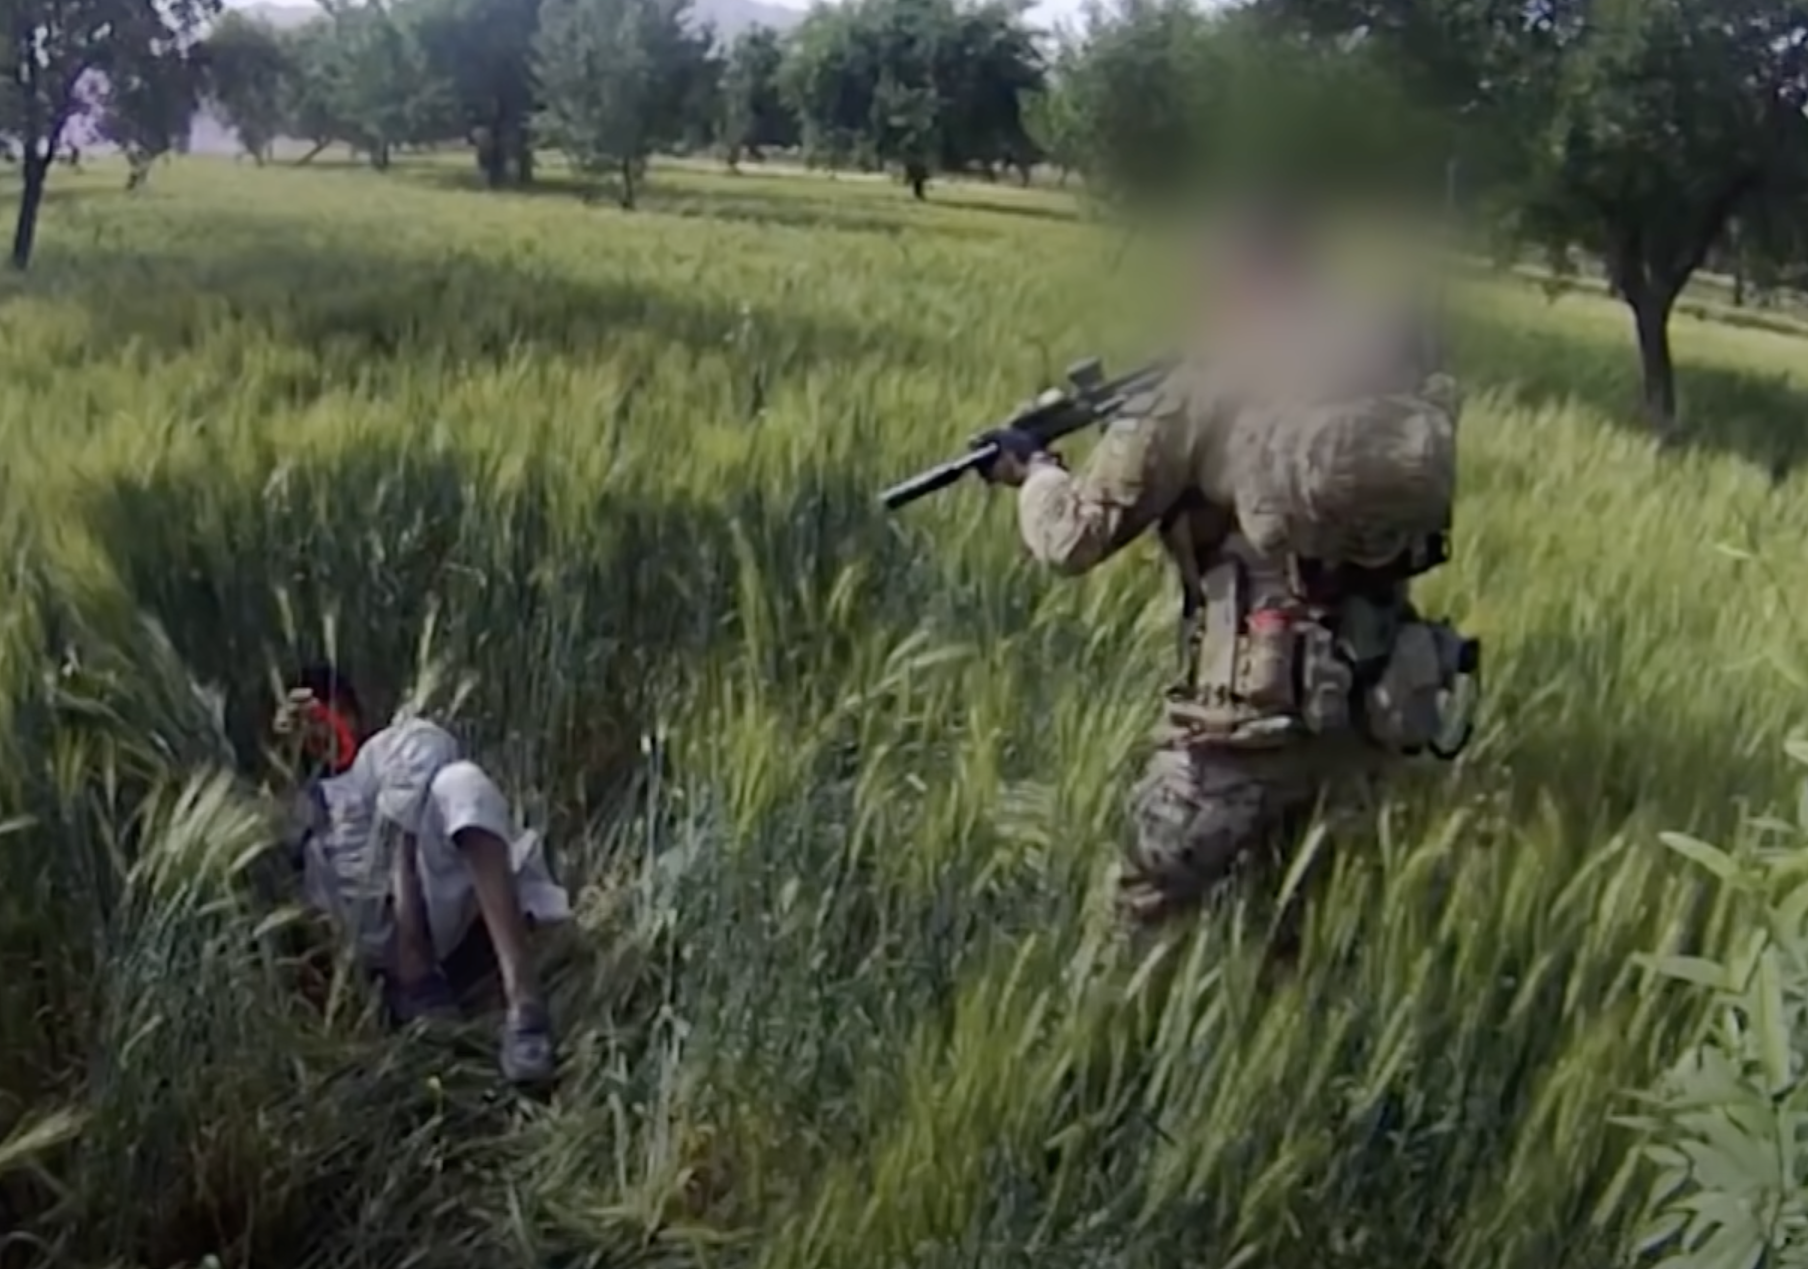 Afghan Files- Four Corners video 16 March 2020 'Killing Field' screenshot